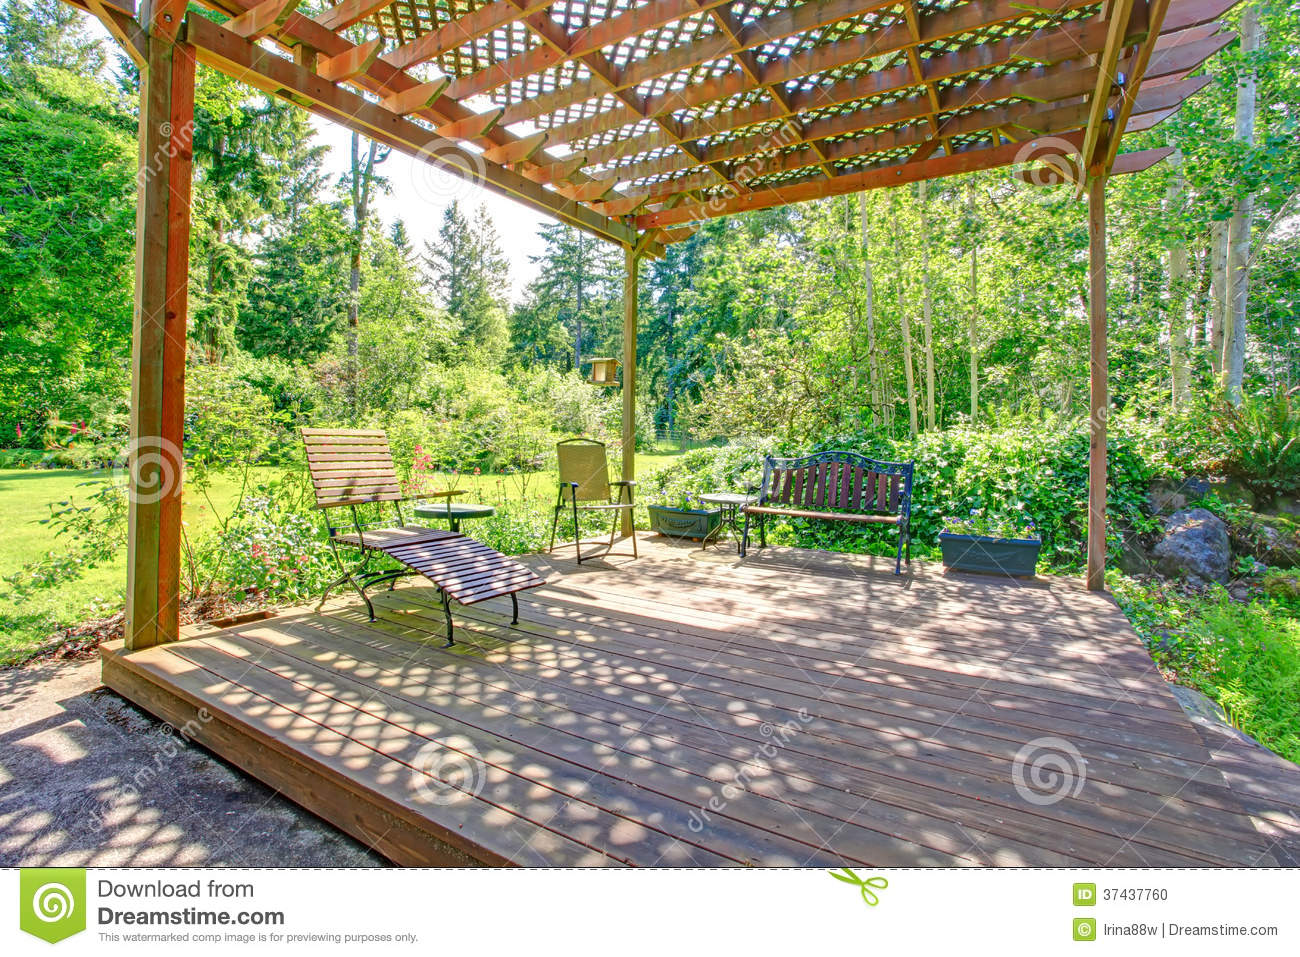 Stock Photo Stunning View Backyard Farm Pergola Open House Rustic Bench Chair Flower Pots Image37437760 on Energy Efficient Greenhouse Design